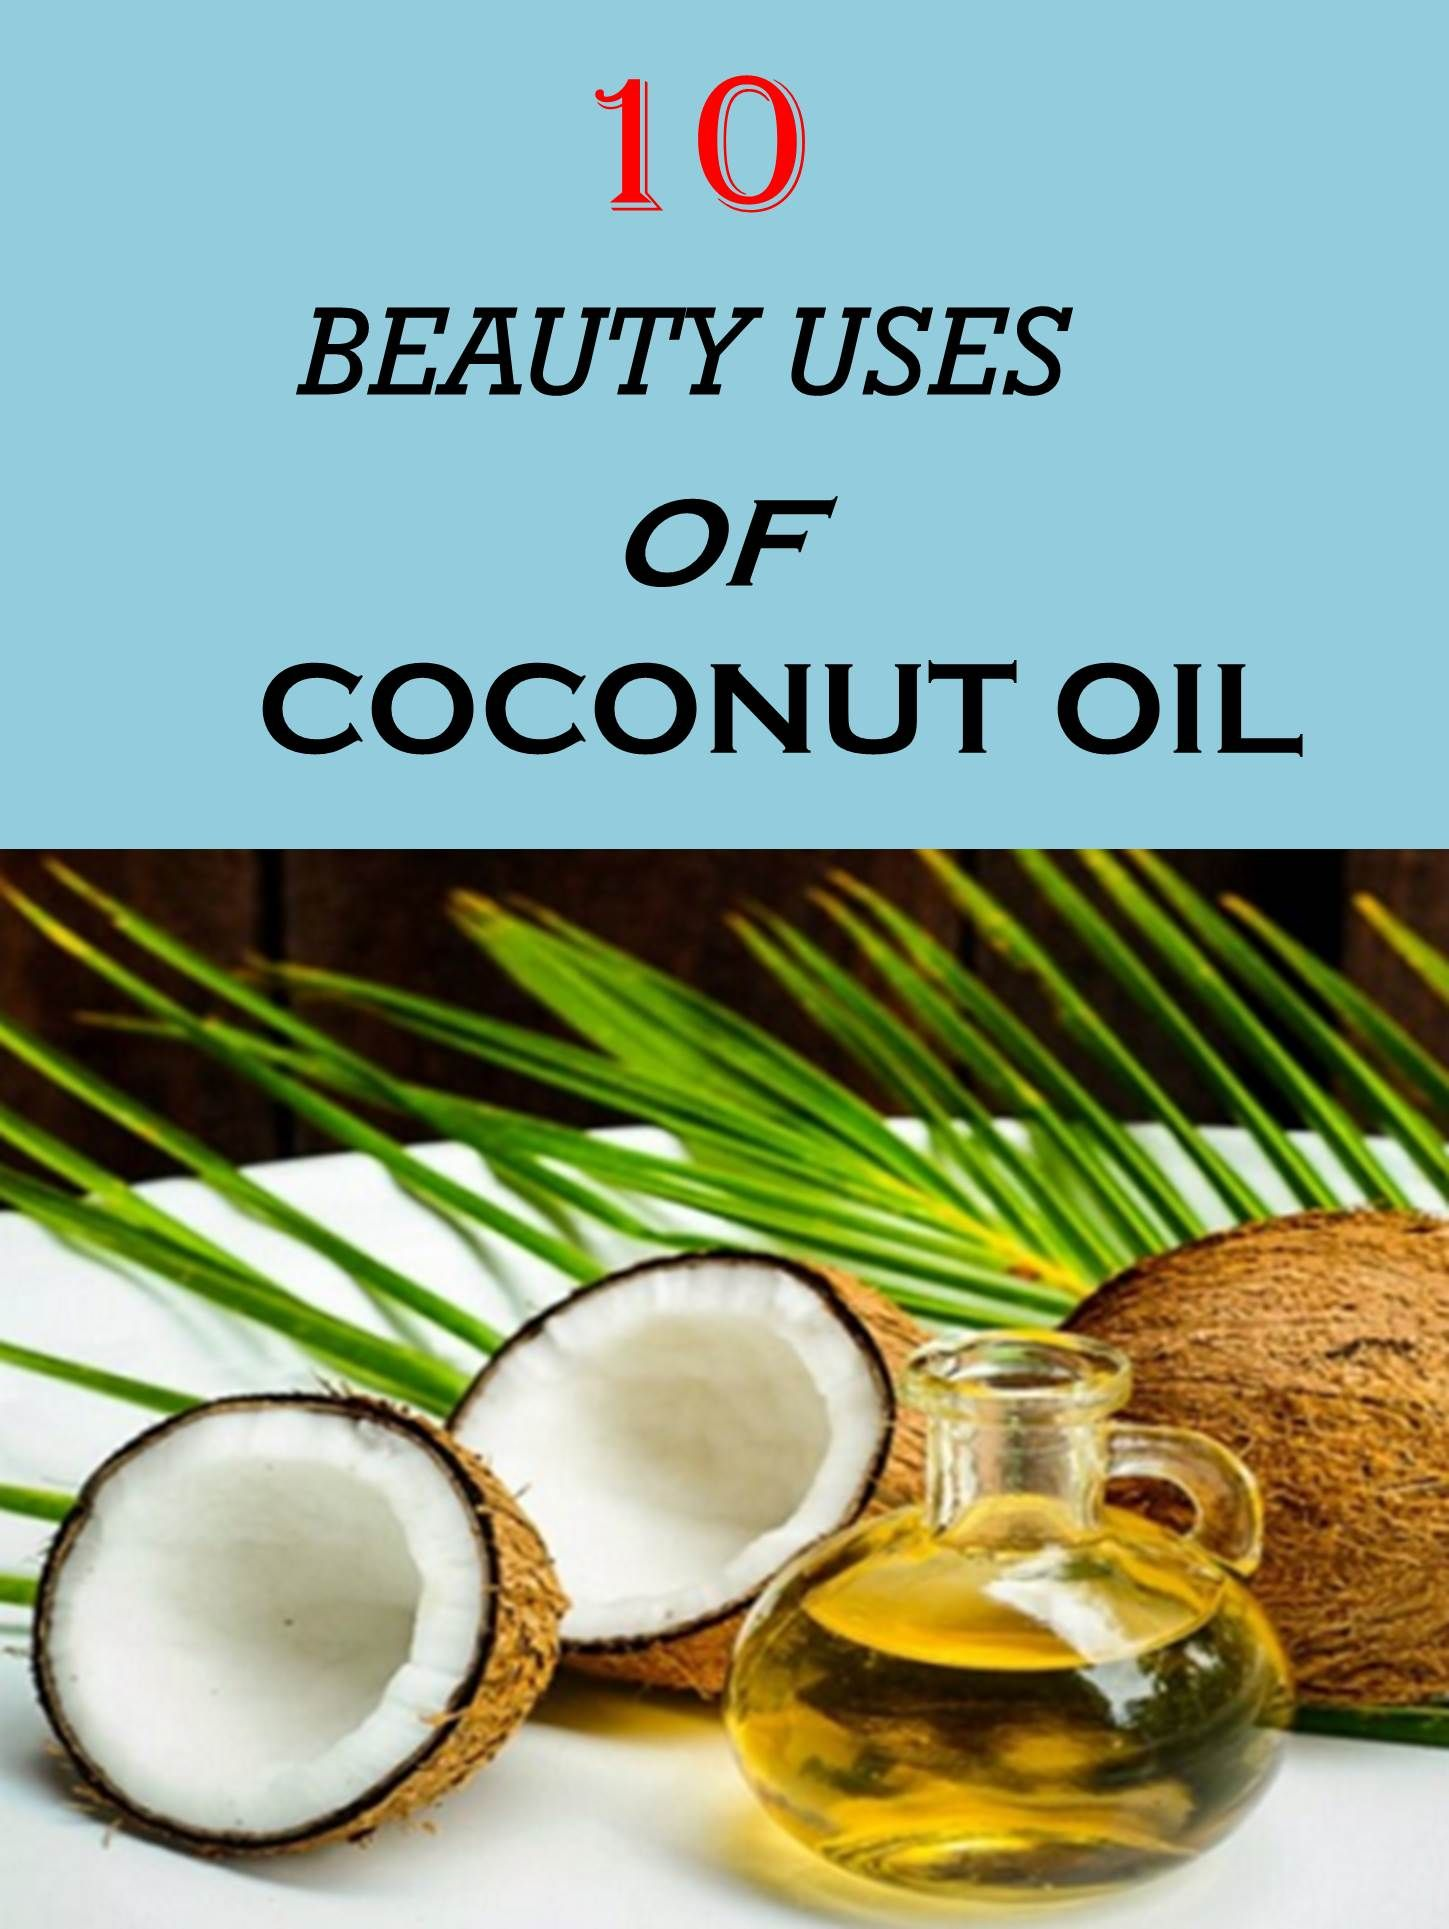 Top 10 Coconut Oil Beauty Uses for your face, body and hair.